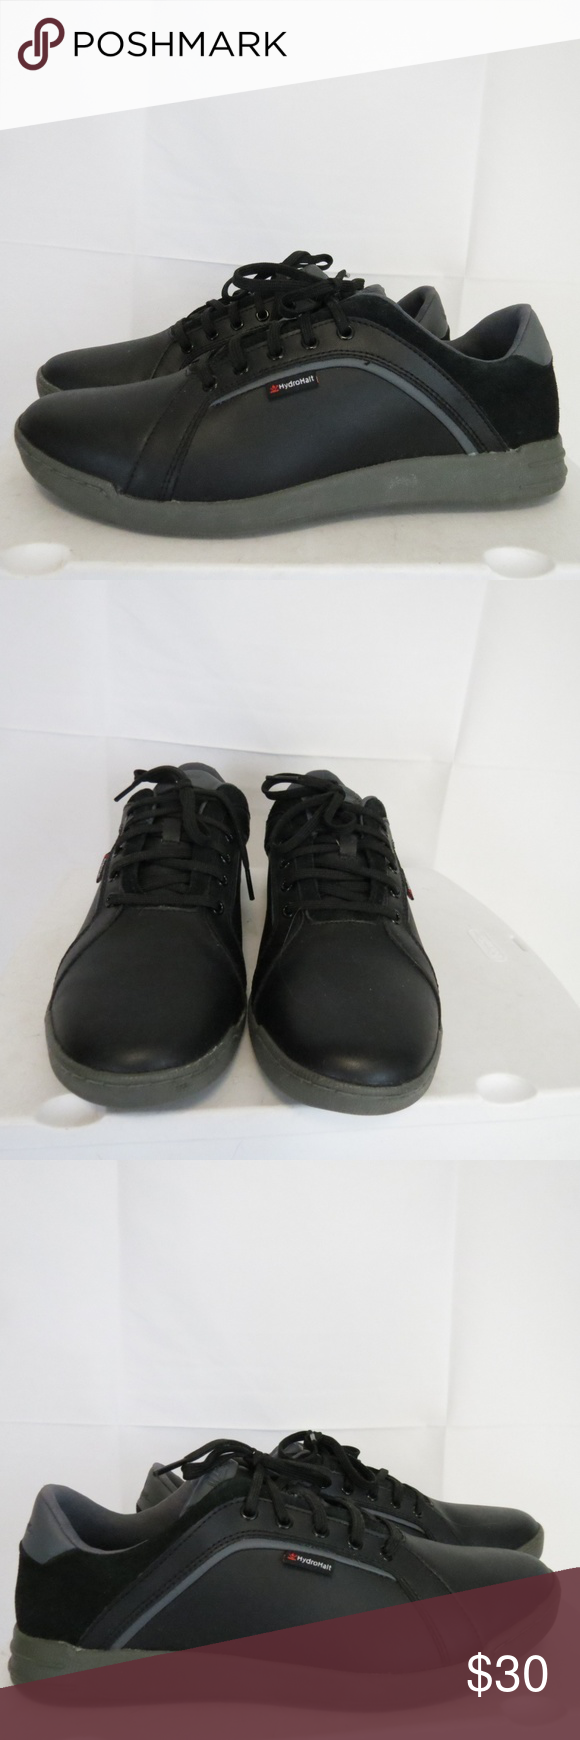 Walter Hagen Men s 9.5 W HydroHalt Golf Shoes Walter Hagen Men s 9.5 W  HydroHalt Golf Shoes Black(location af cp) very good used condition please  see pics ... 37bc594edc